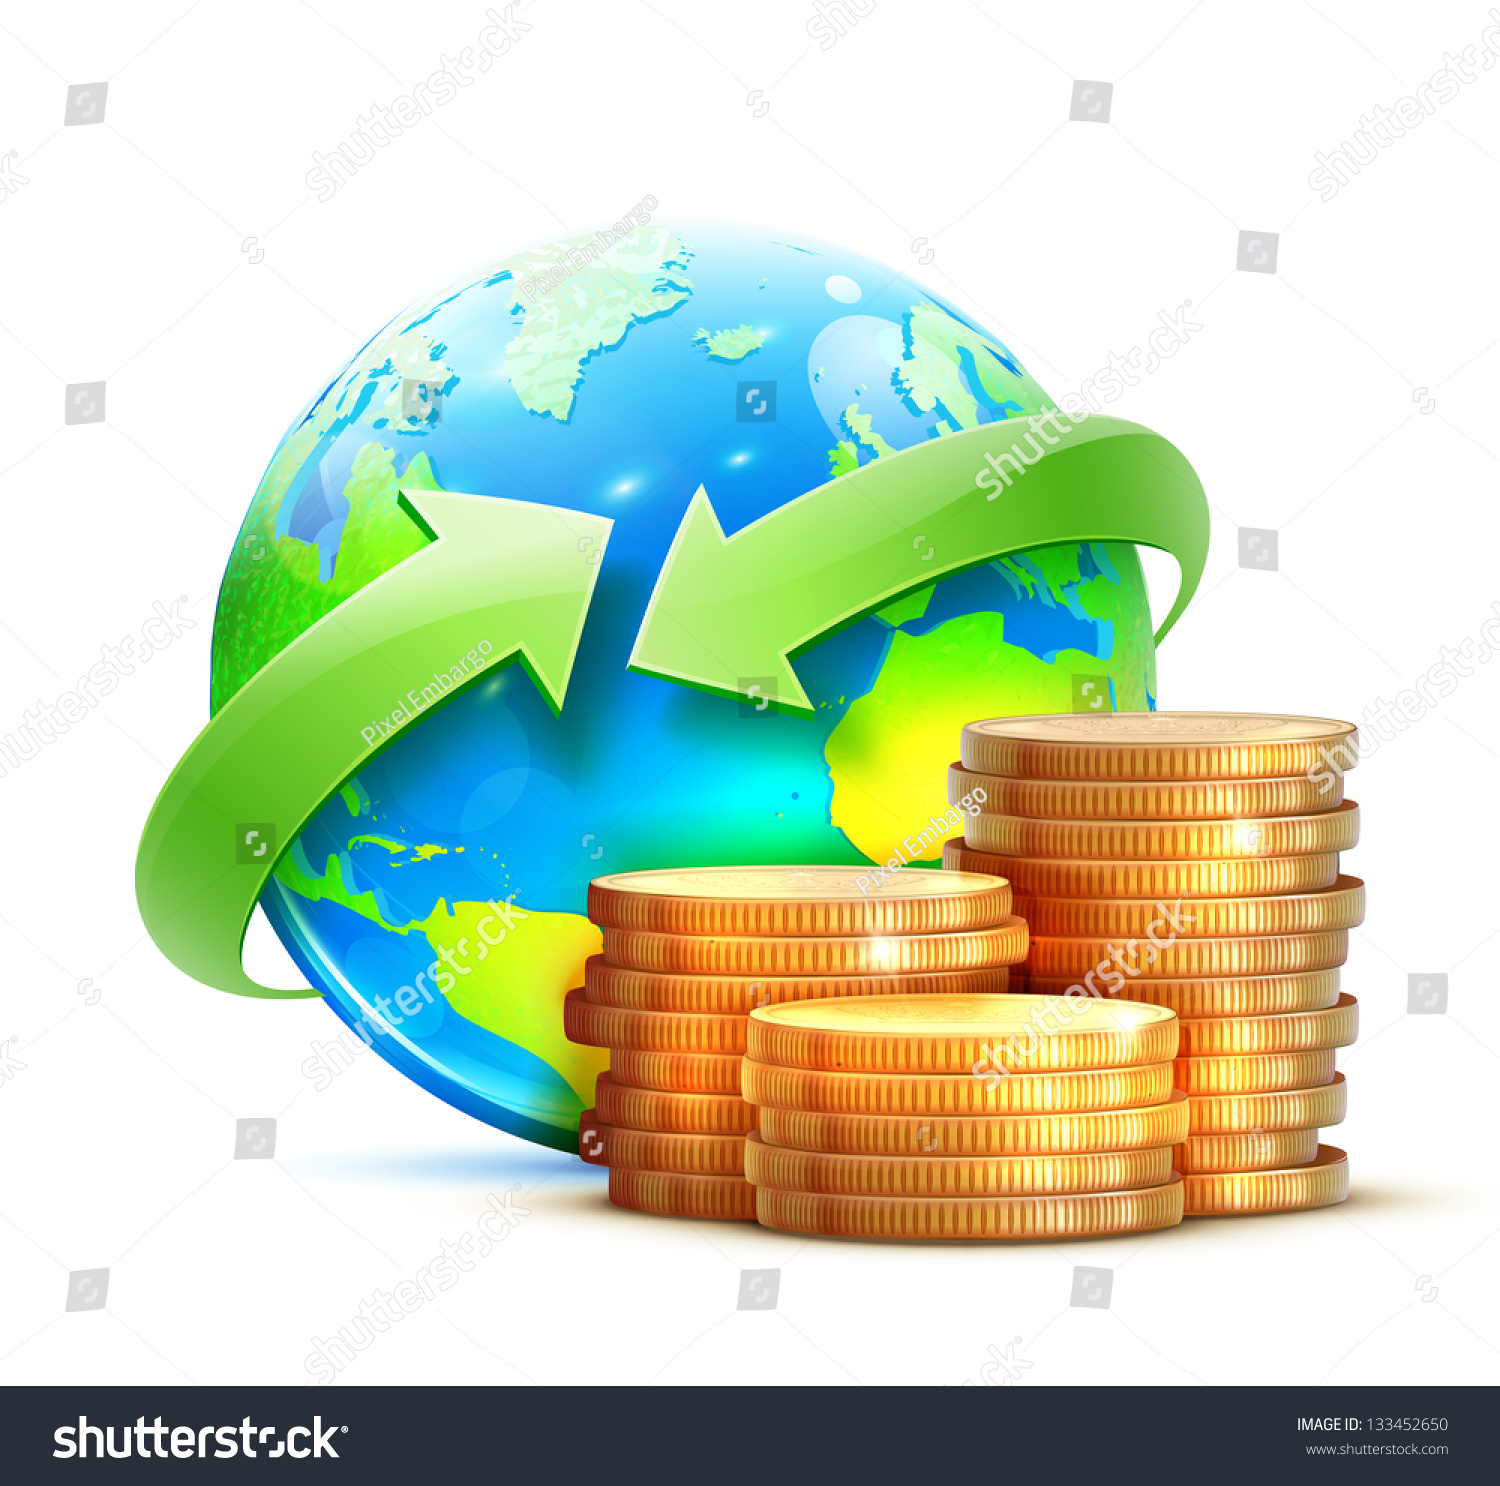 vector illustration global money transfer concept stock Globe Vector Graphics Globe Icon Clip Art